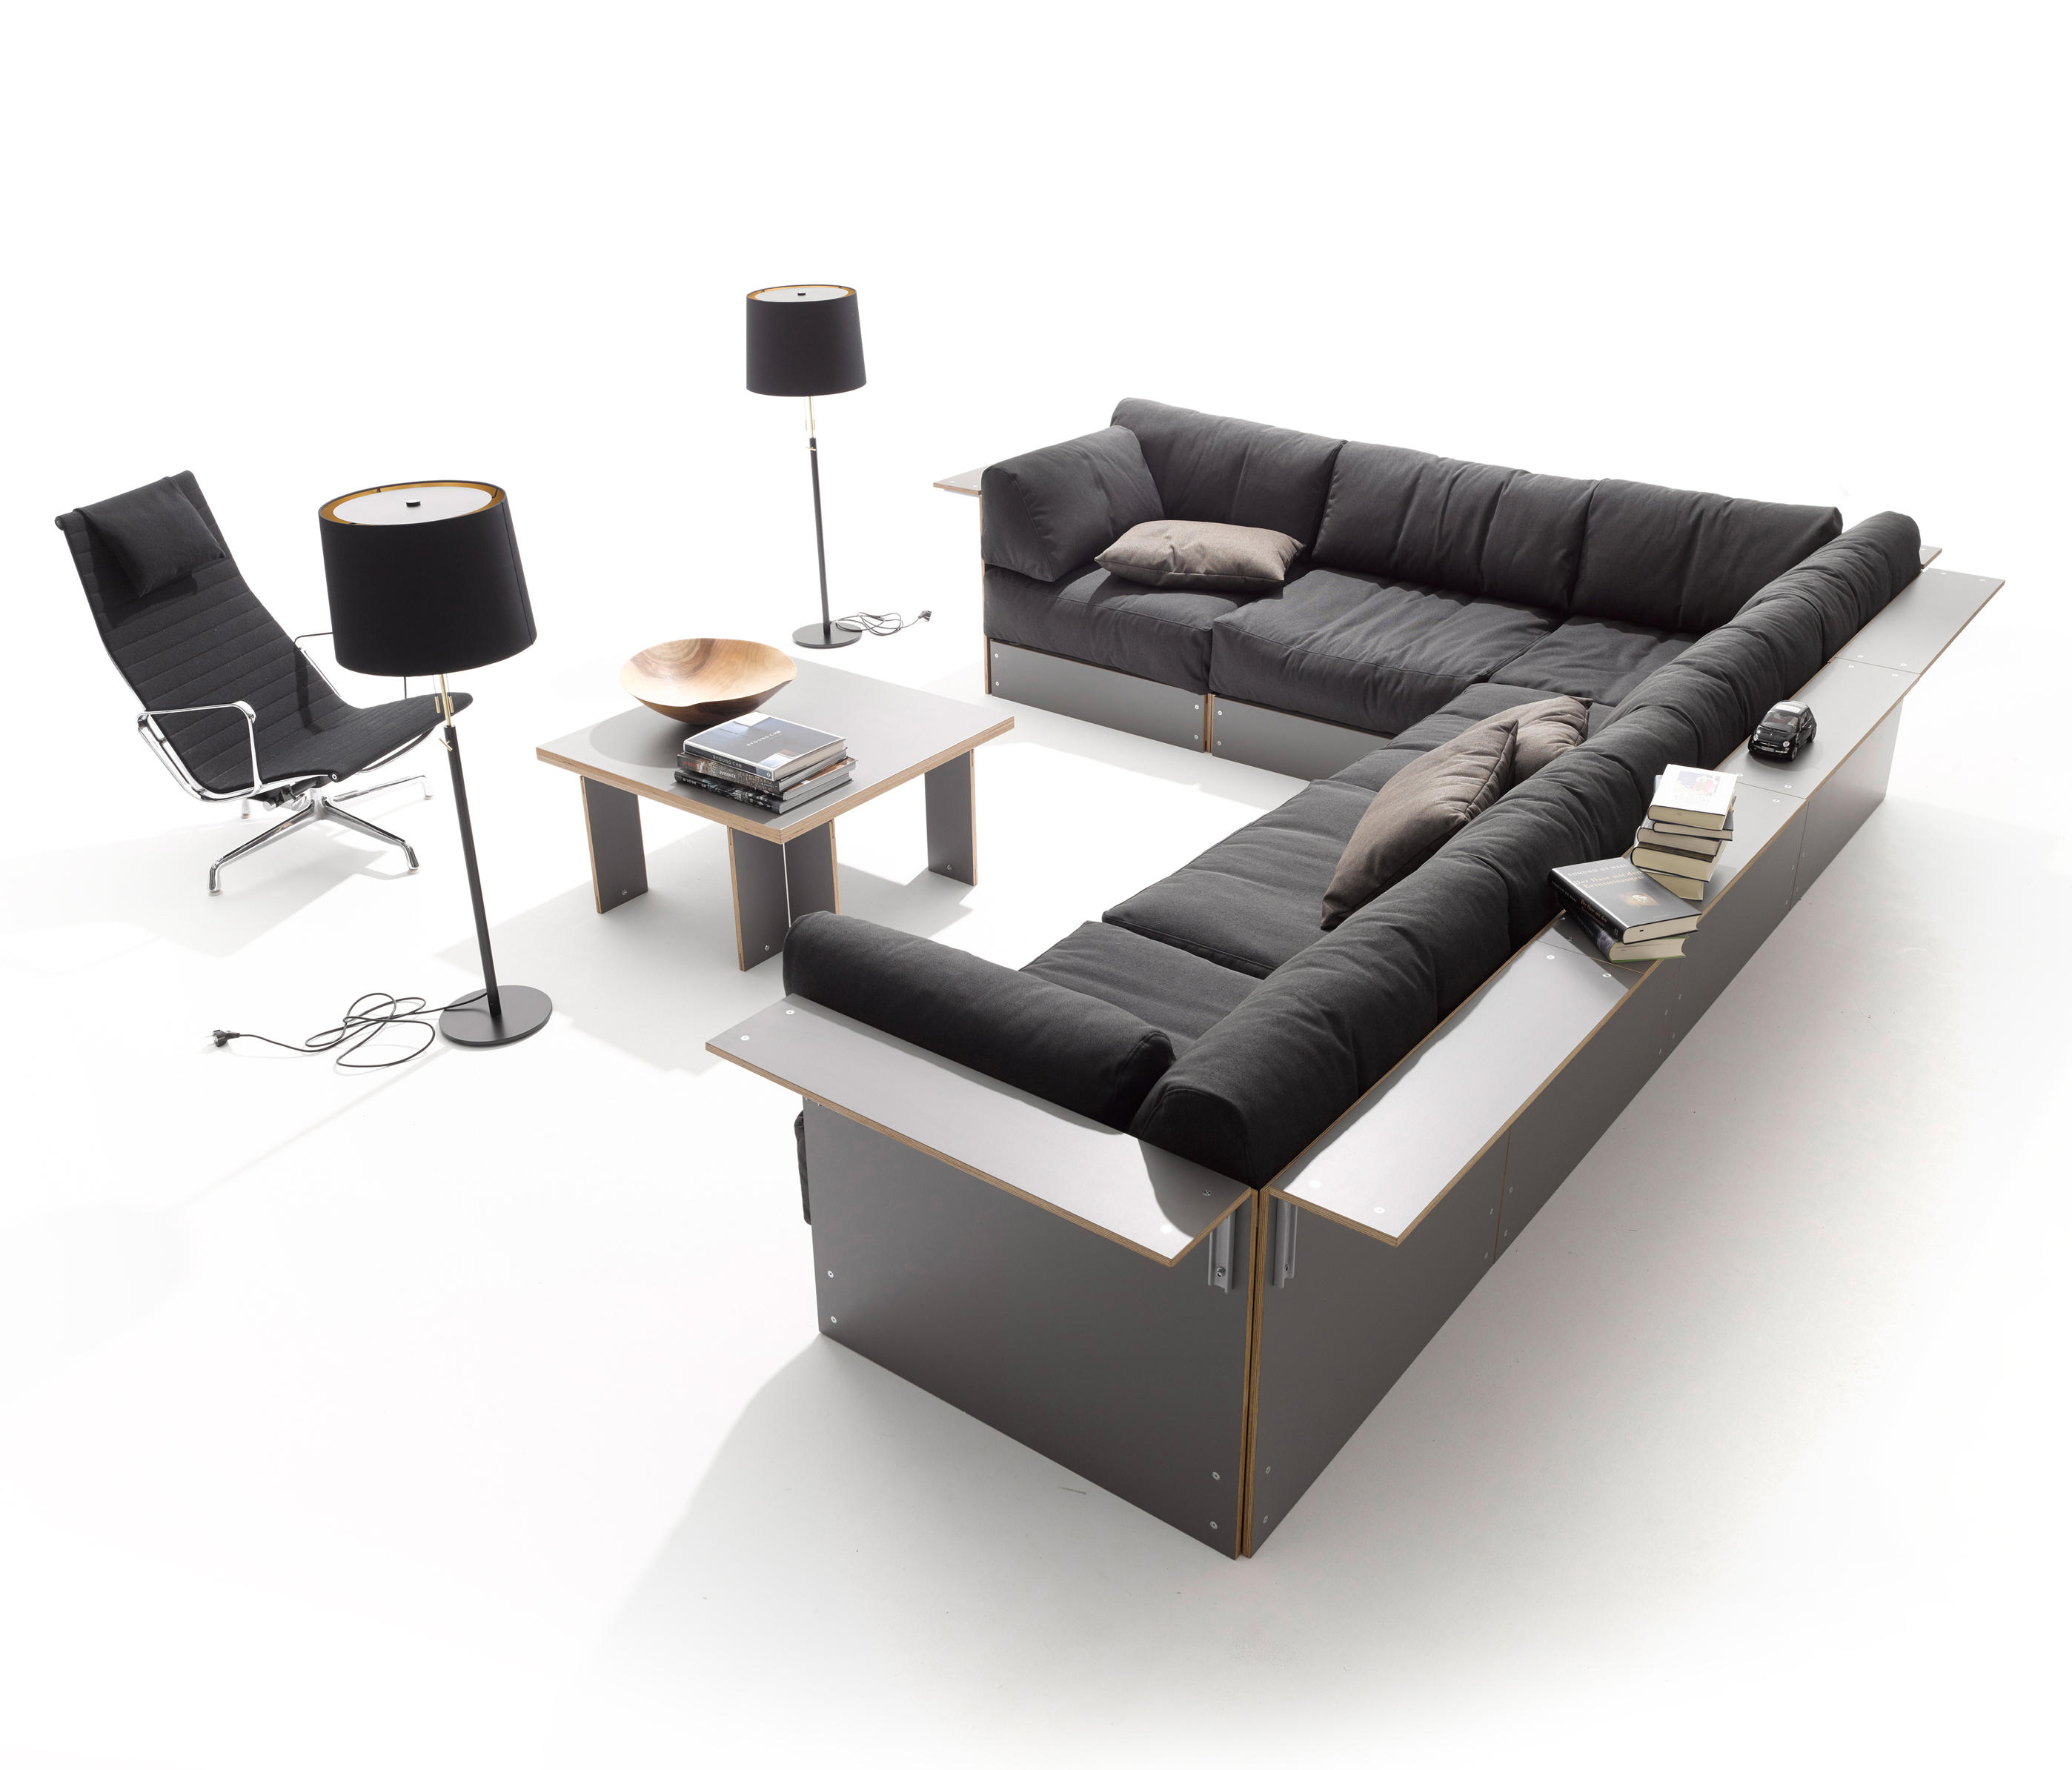 sofabank sofas from m ller m belwerkst tten architonic. Black Bedroom Furniture Sets. Home Design Ideas